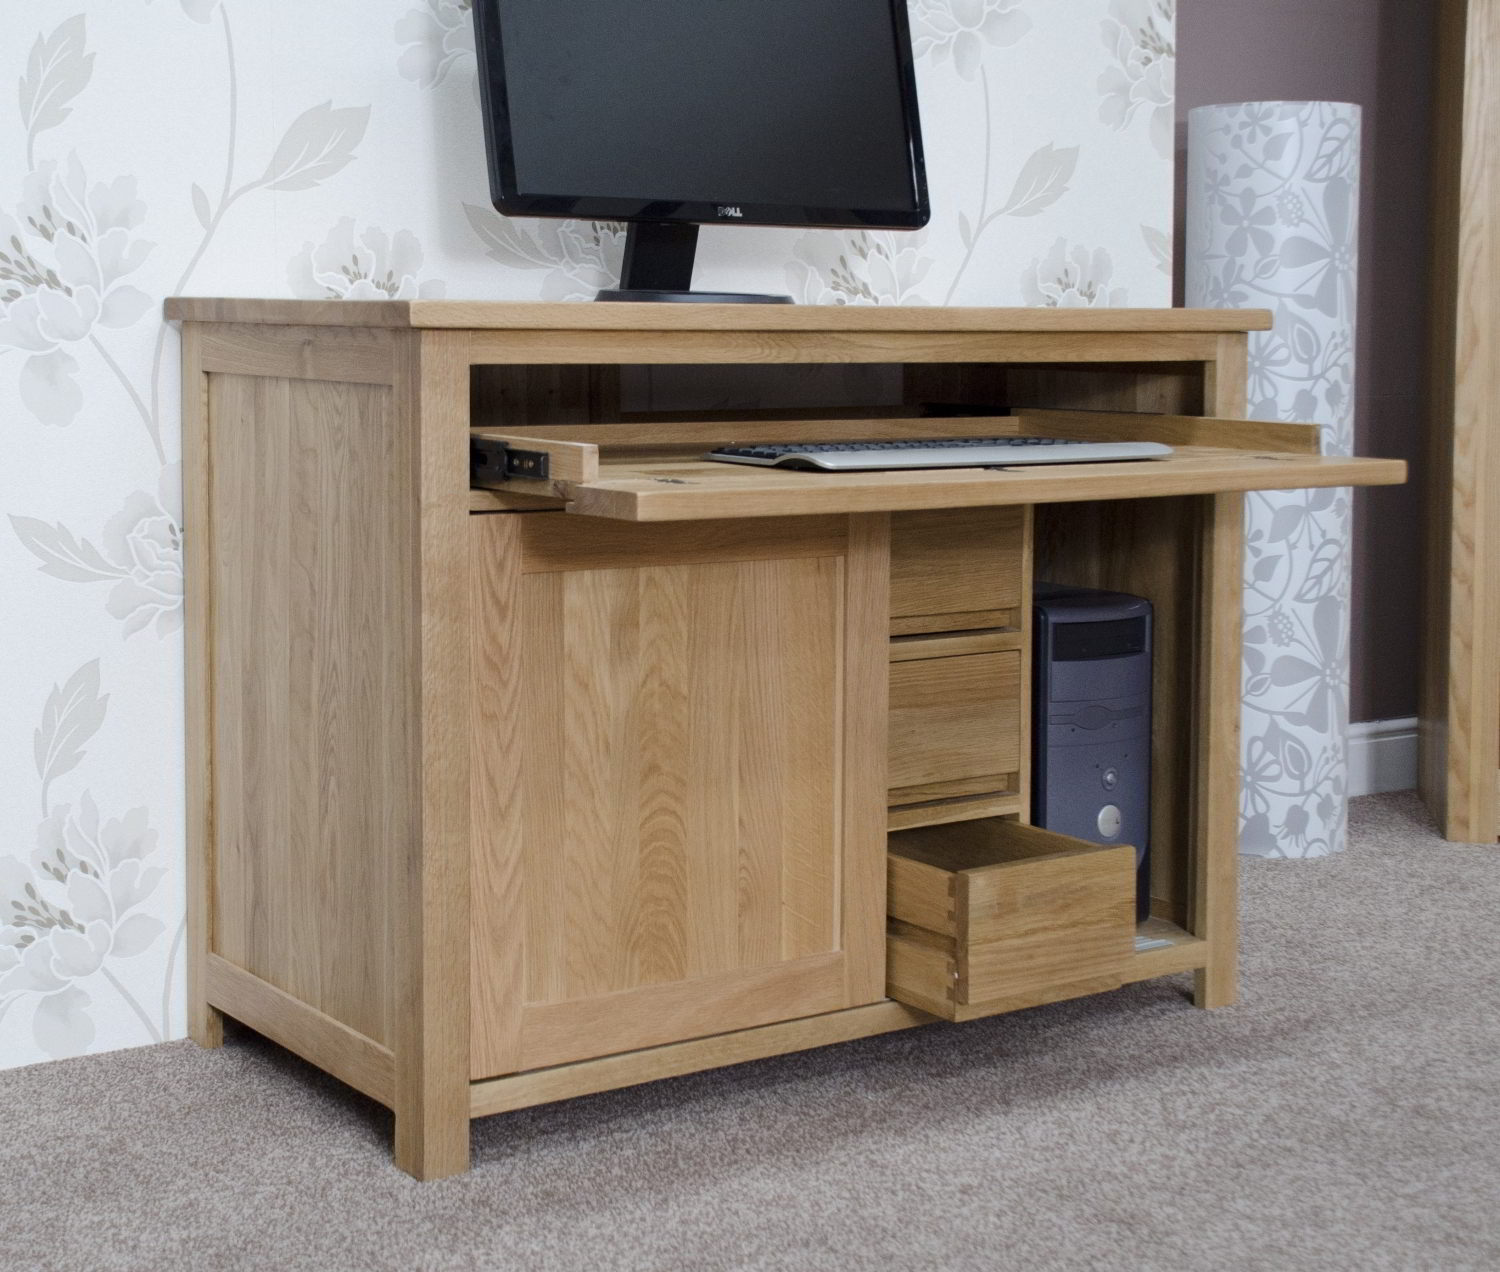 Eton solid oak furniture home office pc hideaway computer for Hideaway home office